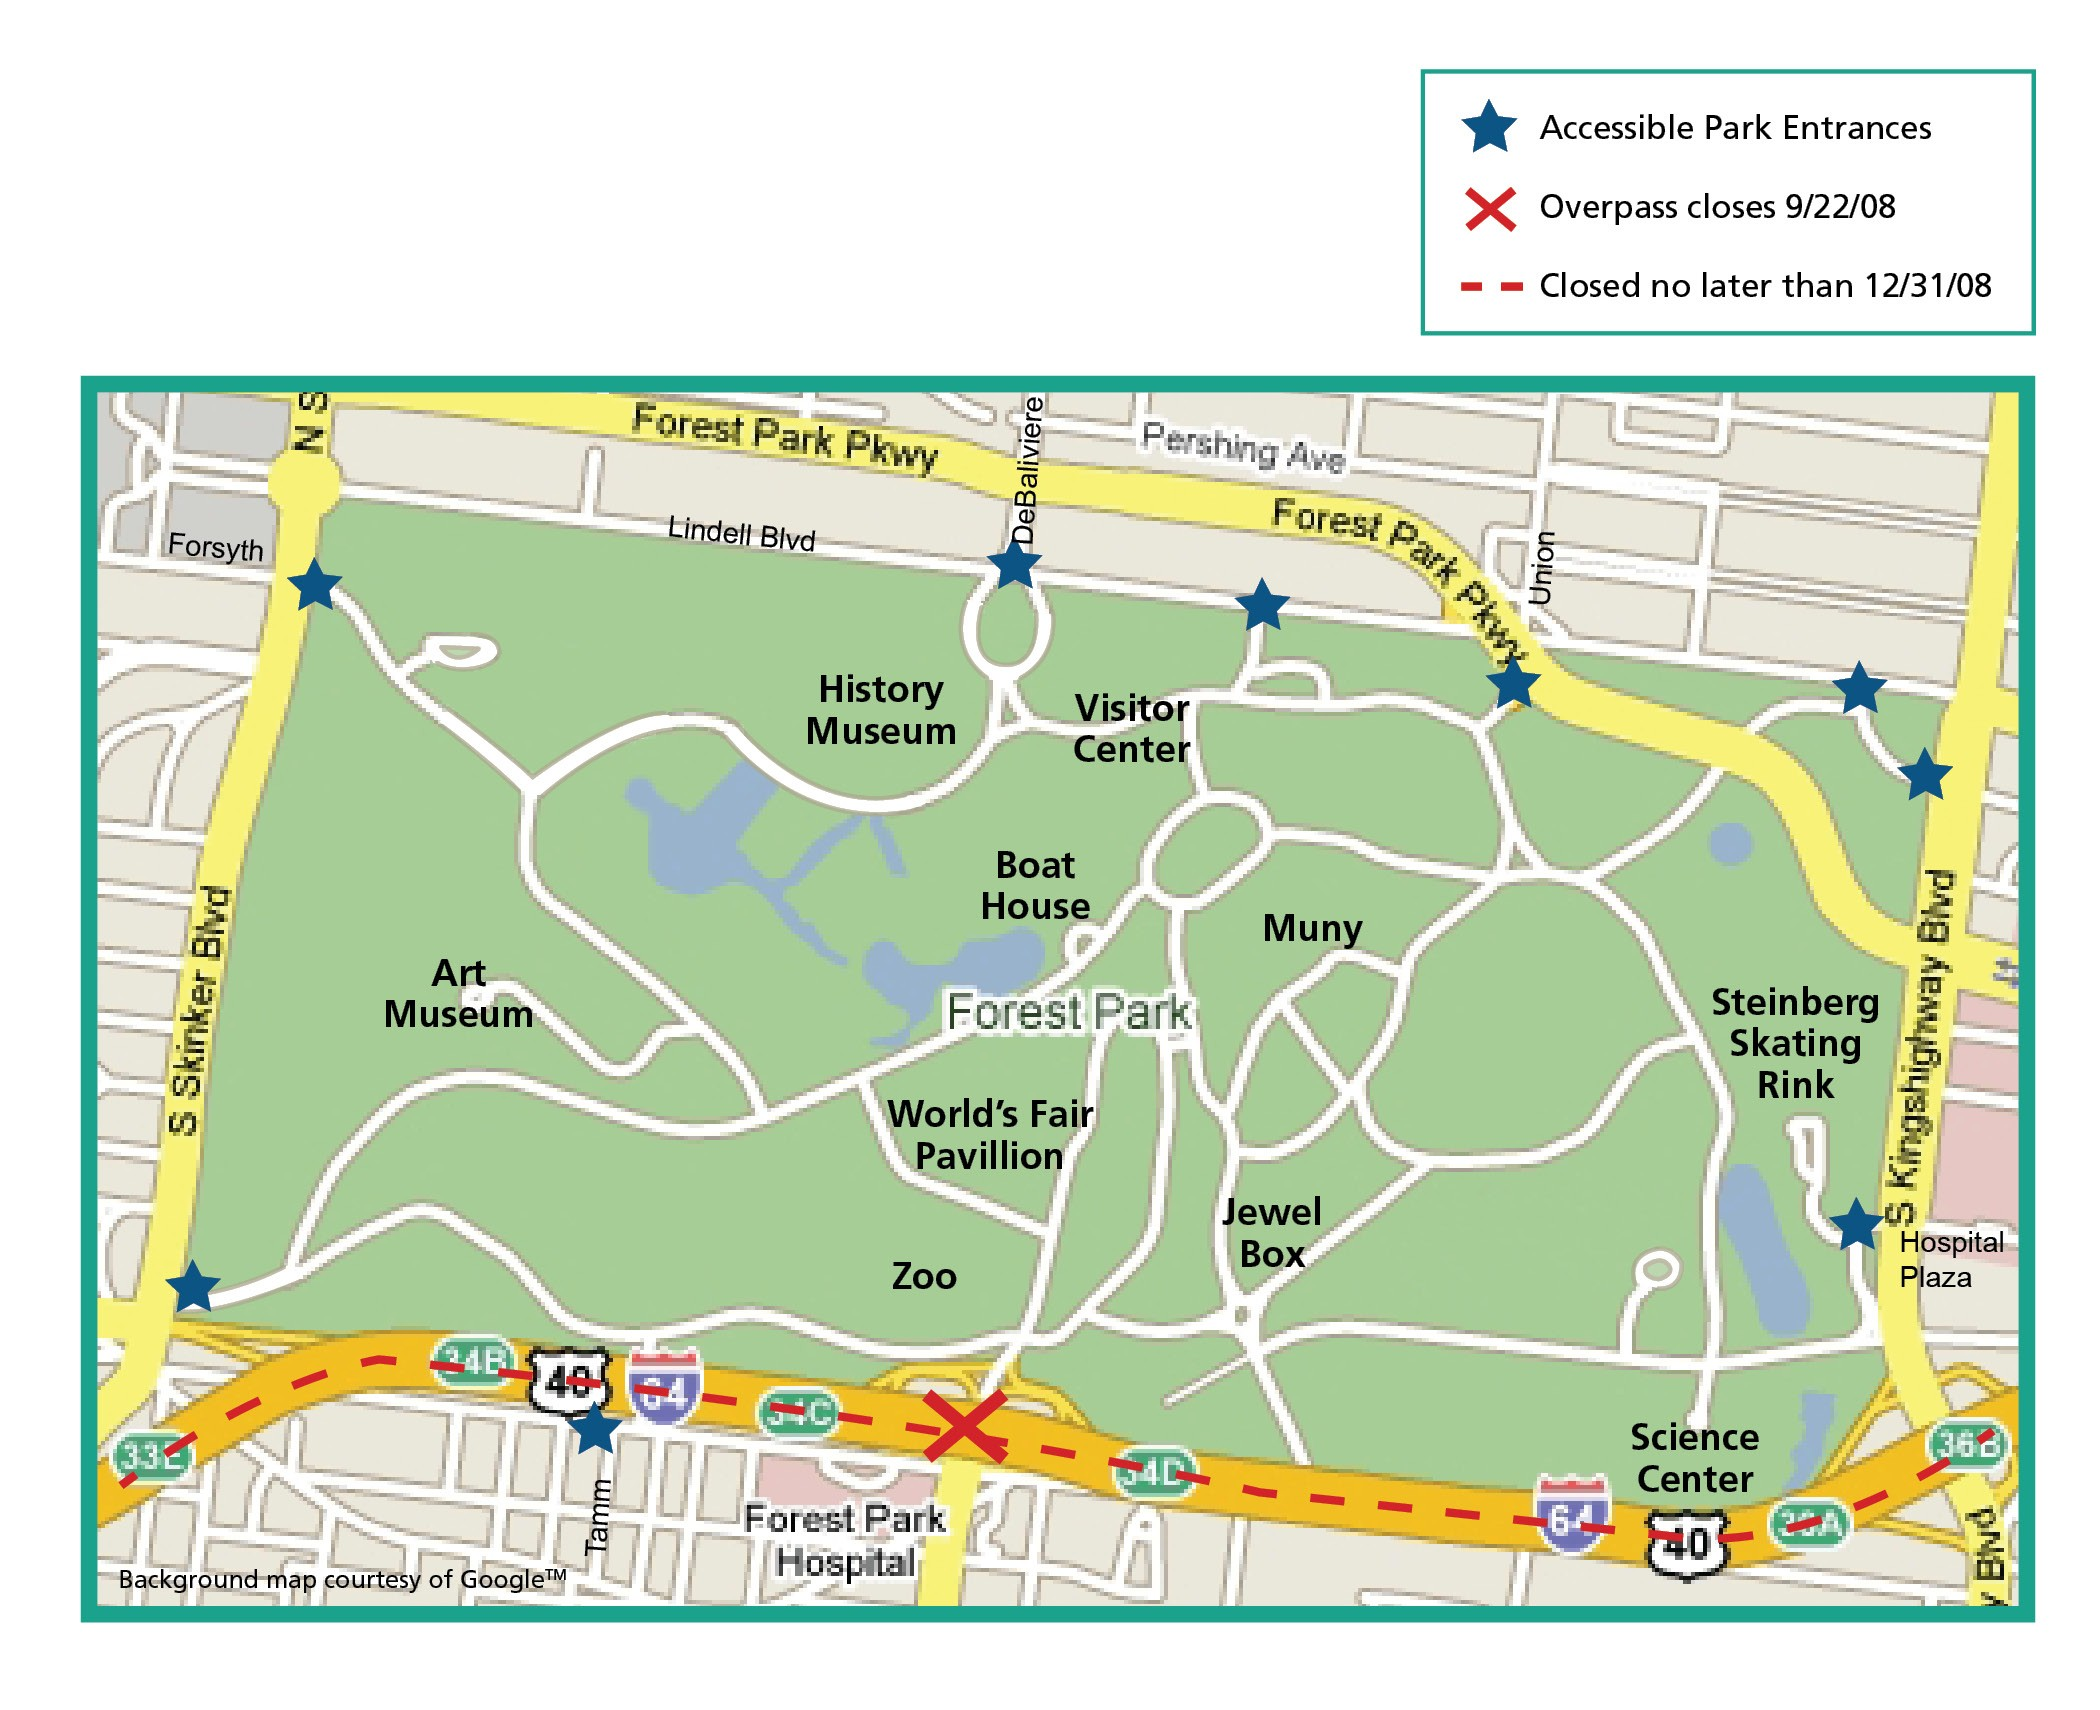 Map Of Forest Park St Louis Miles Pictures to Pin on Pinterest PinsDaddy